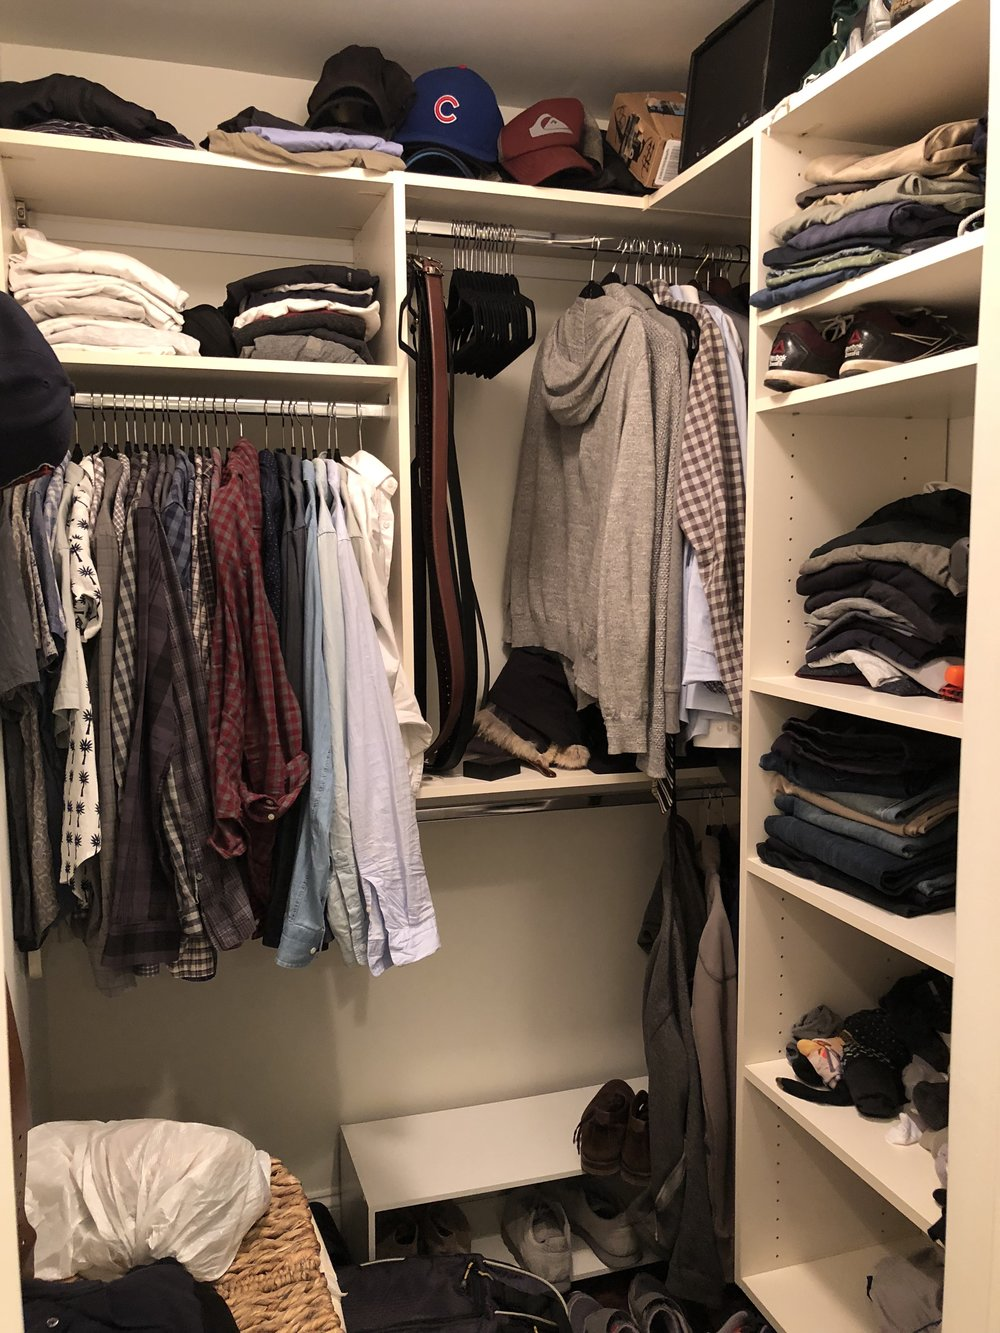 Before! There wasn't enough shoe storage, nothing had a clear place and there weren't any containers. This resulted in things being thrown on shelves and shoes covering the floor. The hamper was moved to the laundry room to free up floor space. What a transformation!